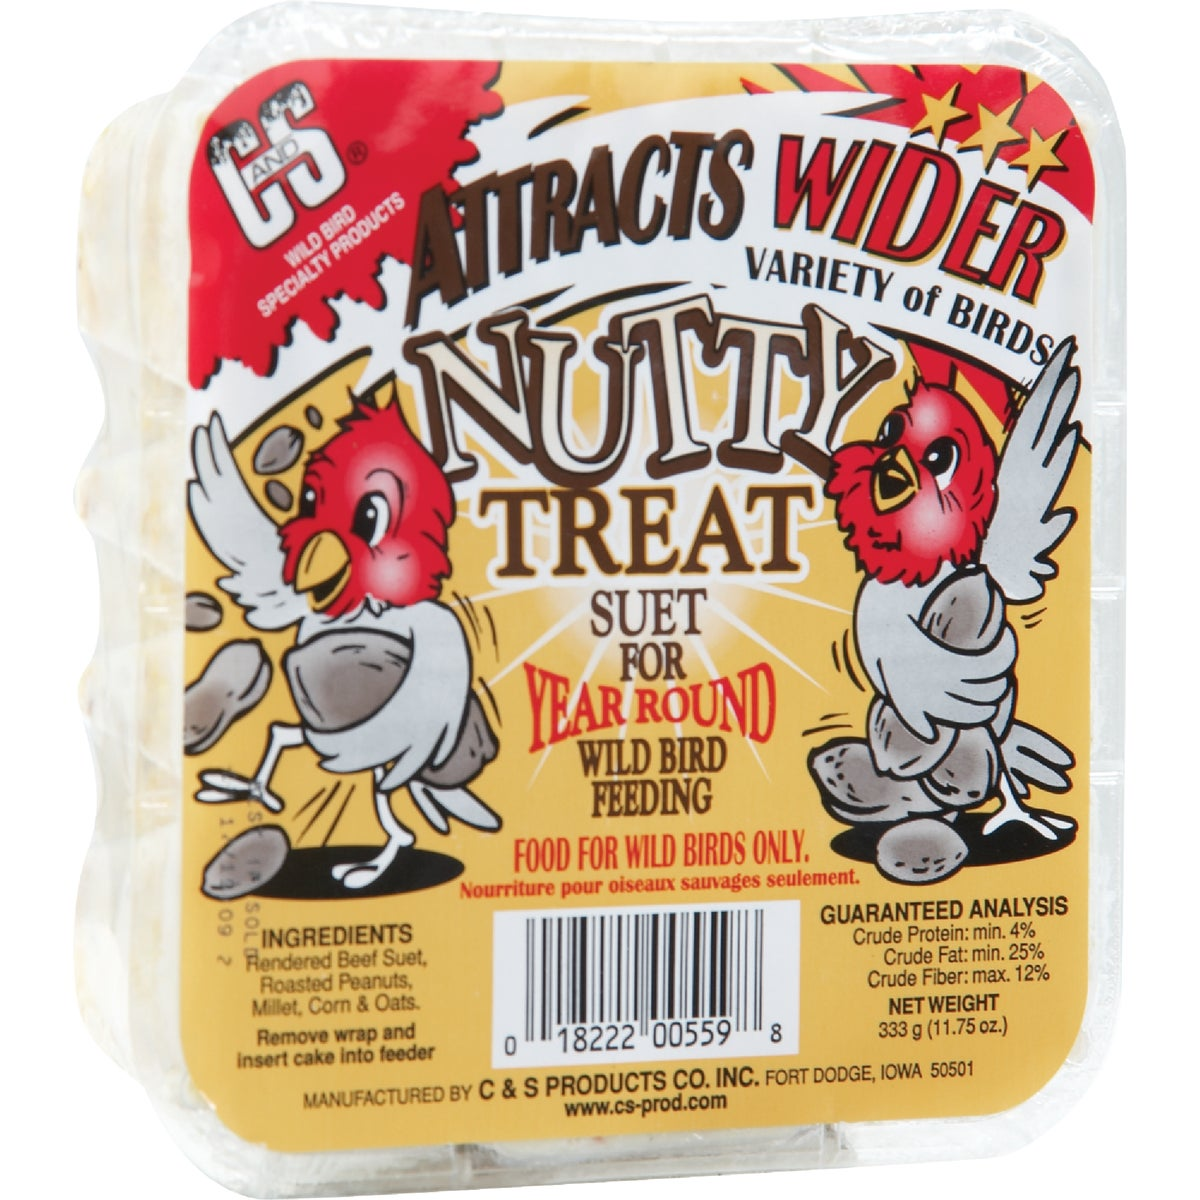 NUTTY TREAT SUET - 12559 by C & S Products Inc